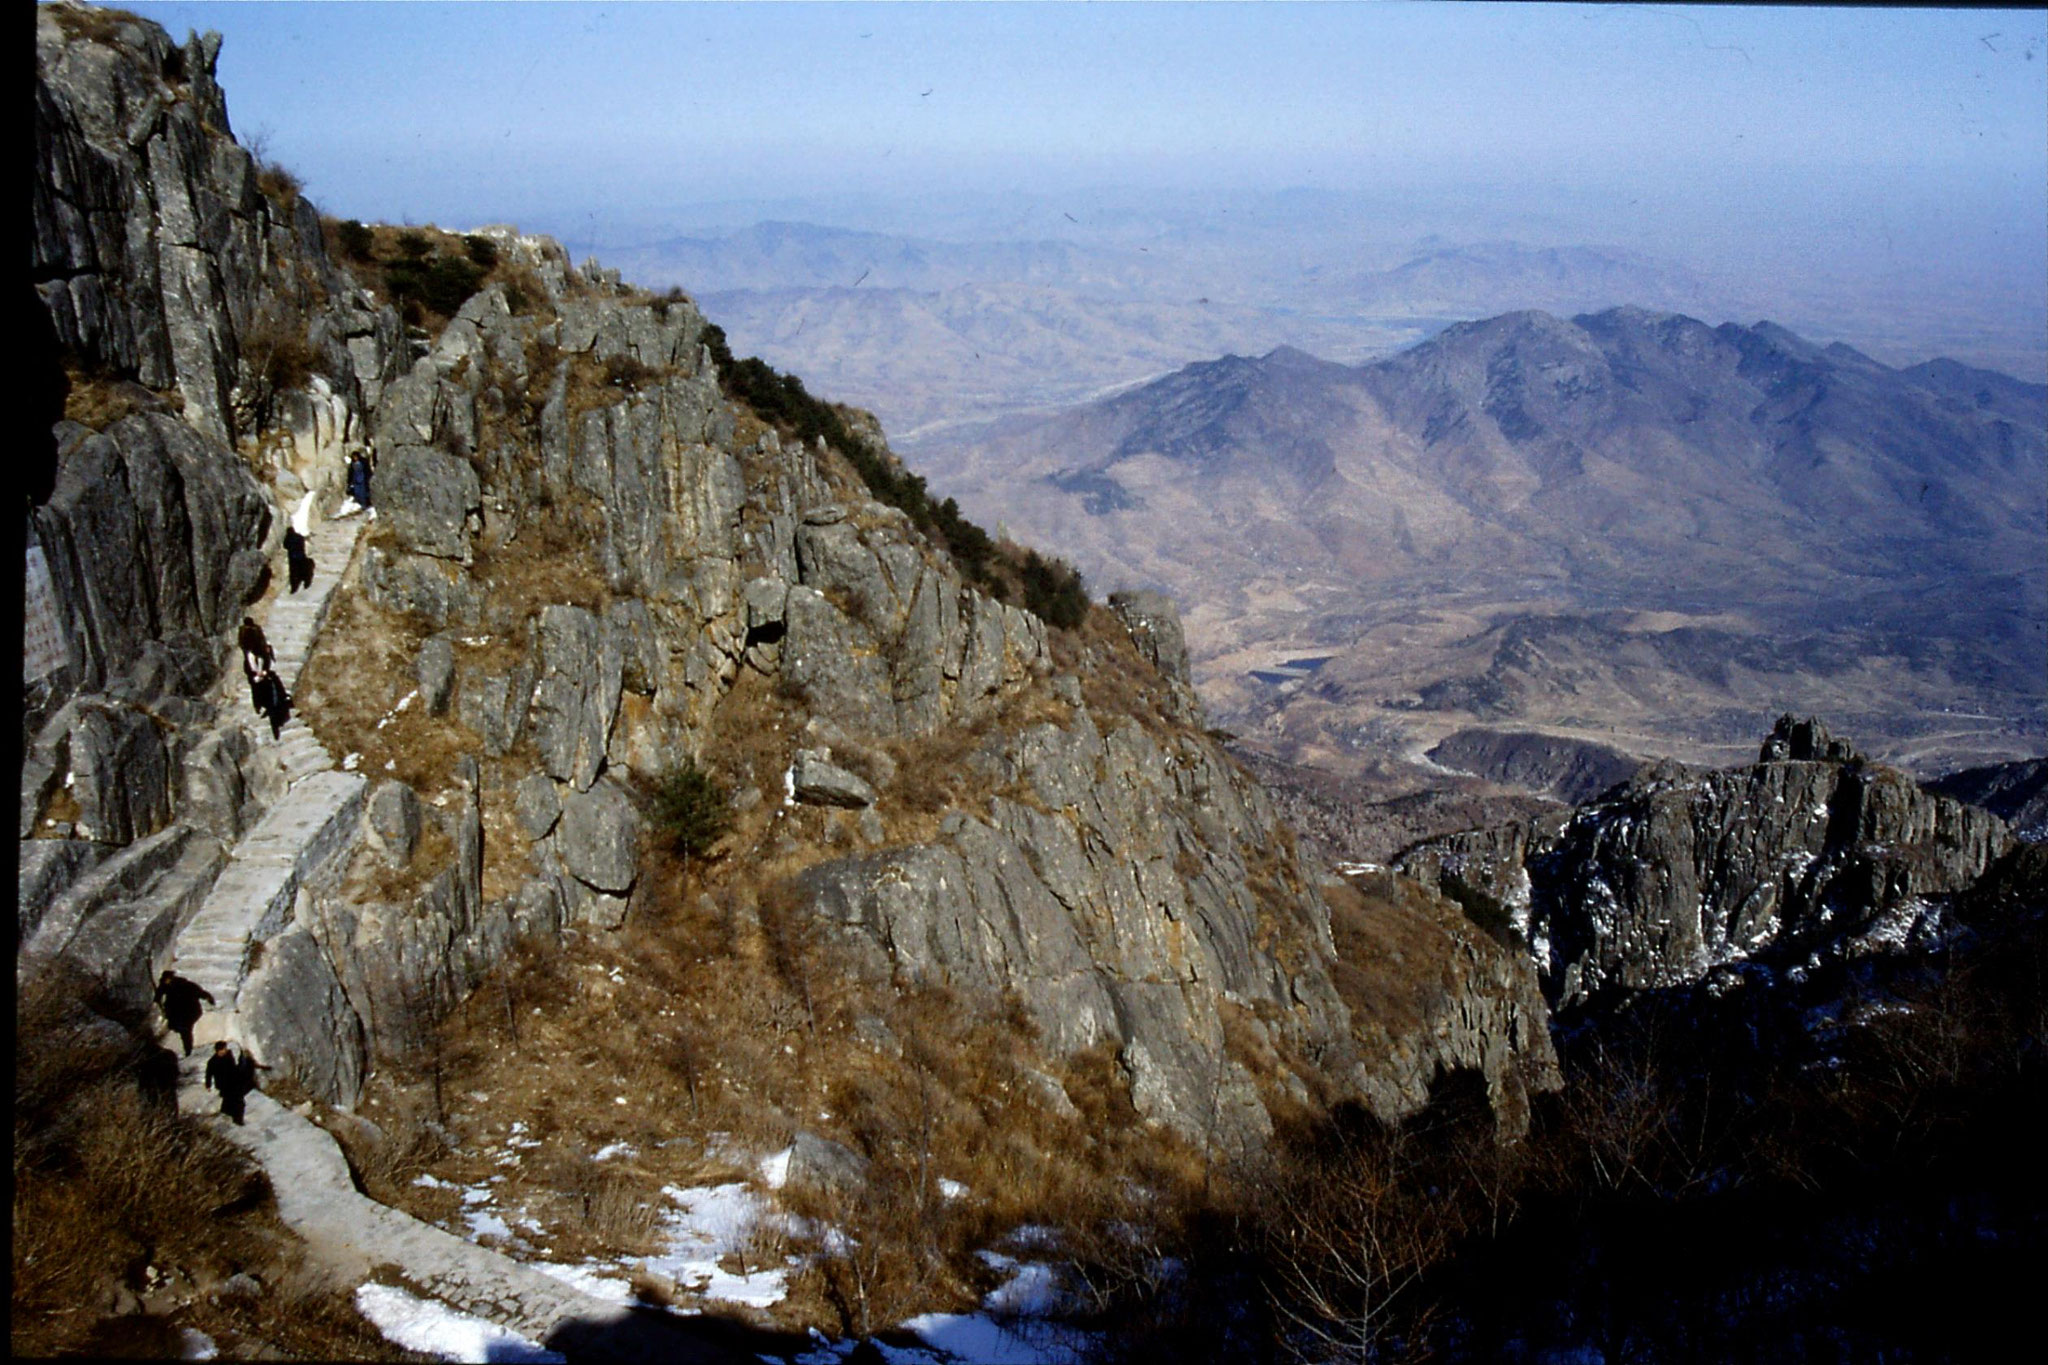 18/2/1989: 24: Taishan view down from Azure Cloud temple